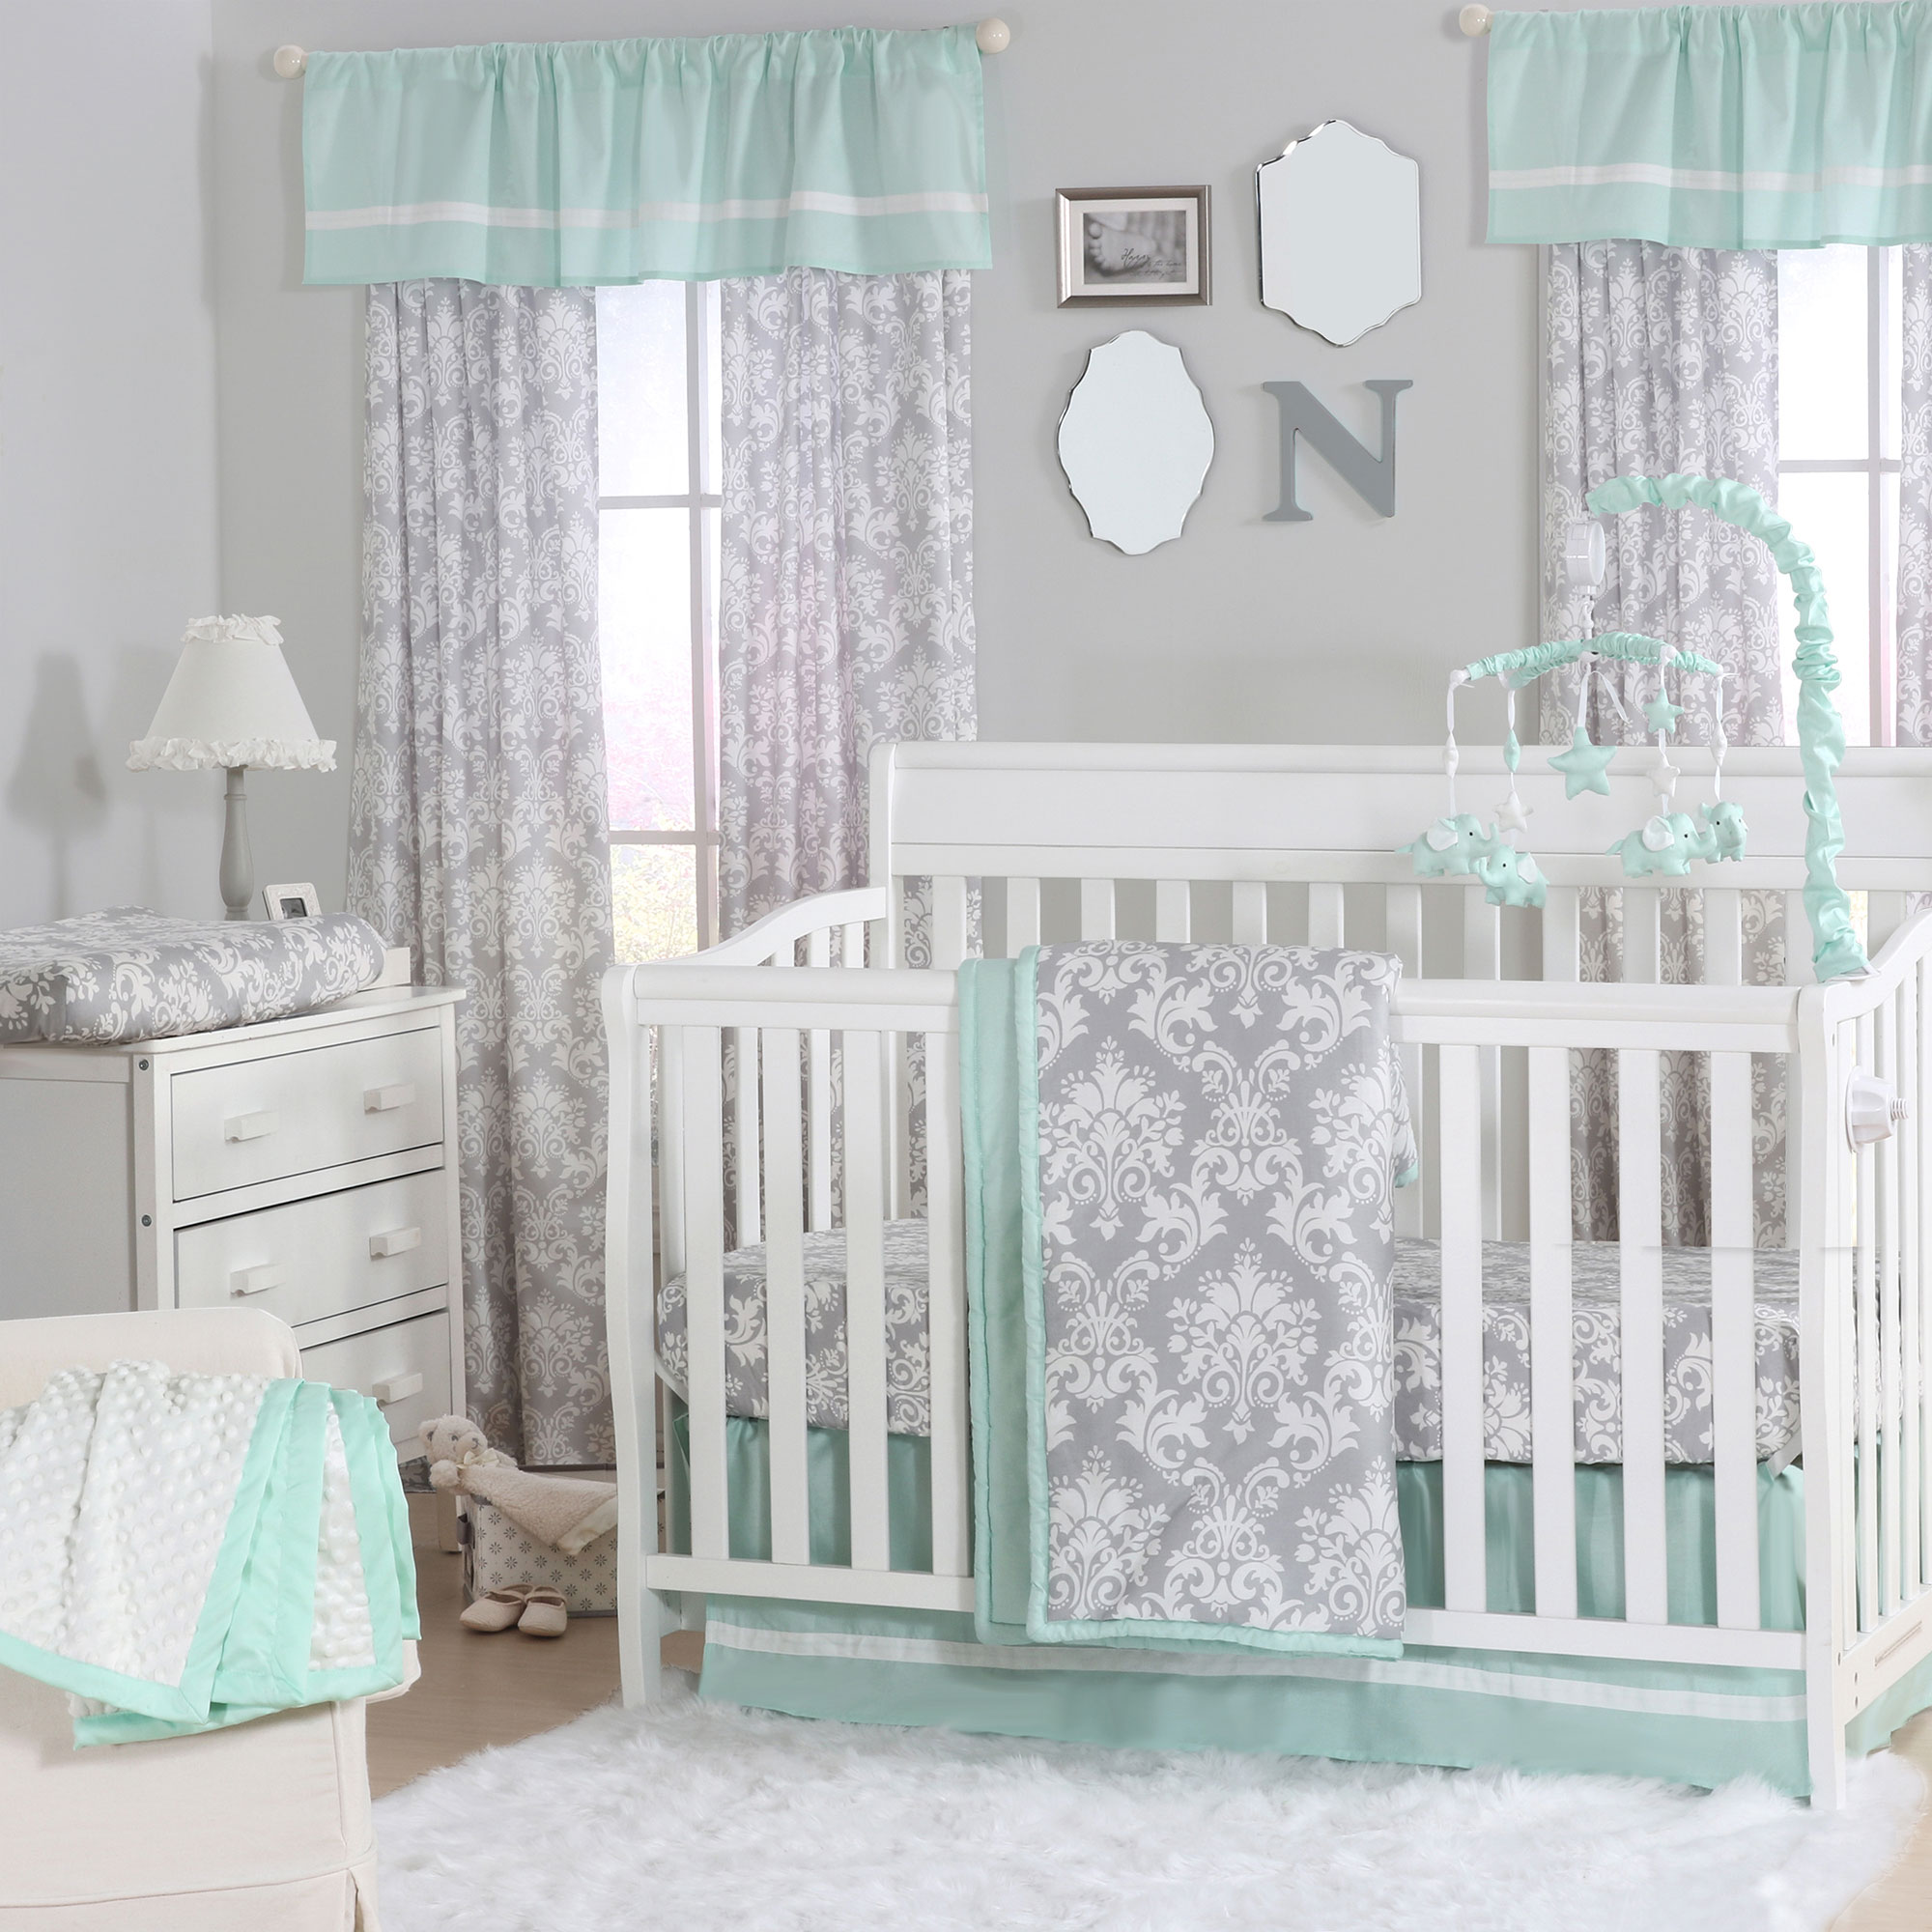 amazon com home babyfad baby dp white sets minky crib kitchen cribs bedding piece bed set